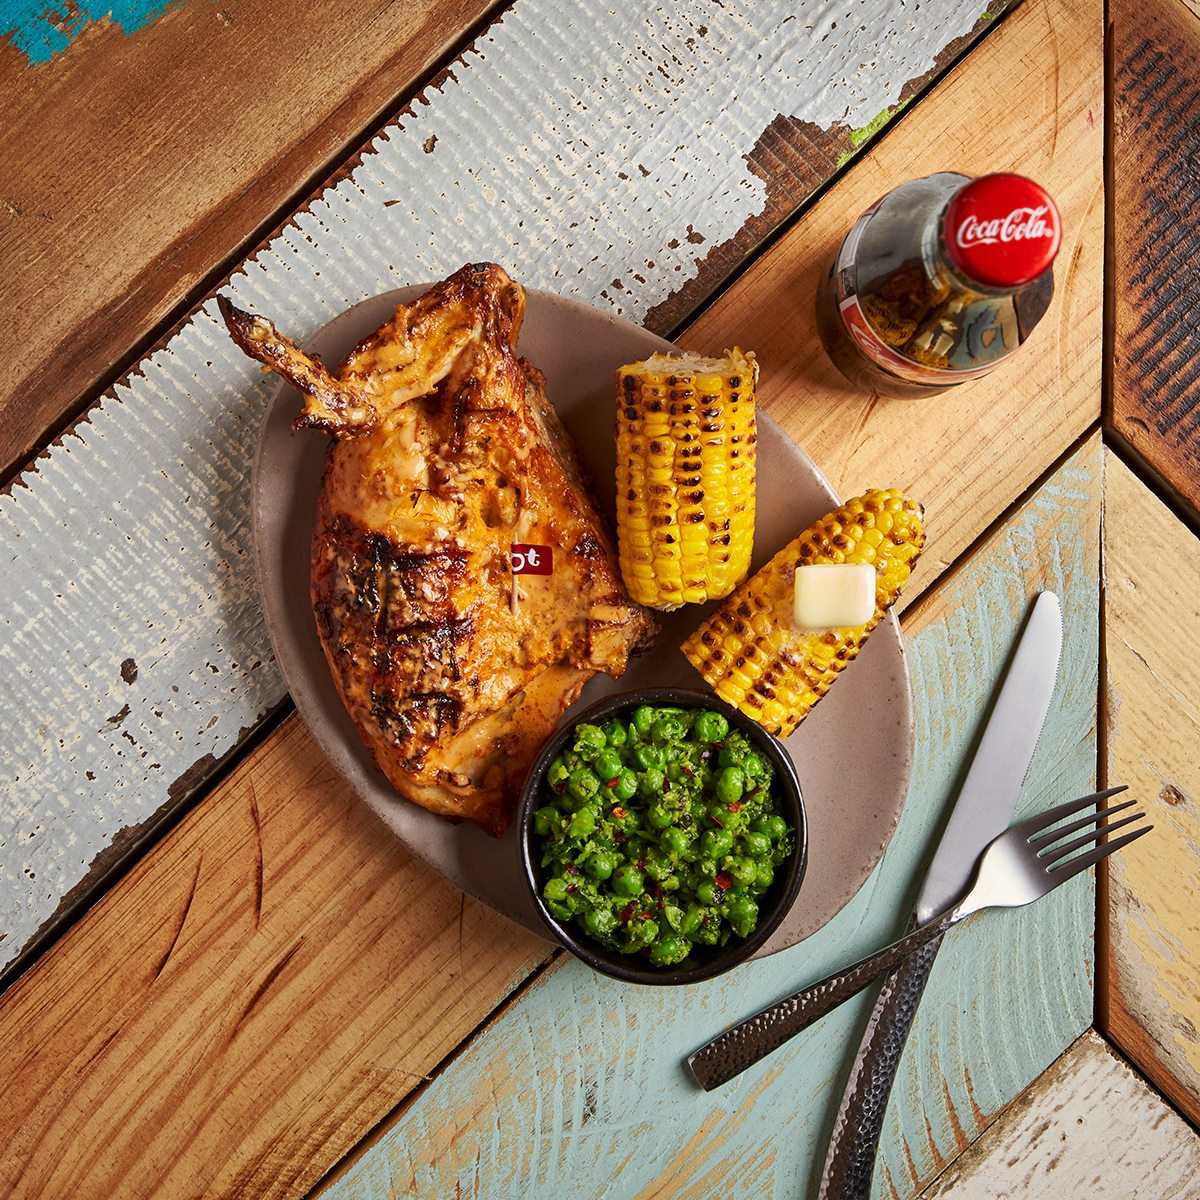 Renovated Nando's Re-Opens in Dupont Tomorrow With Draft Beer Taps